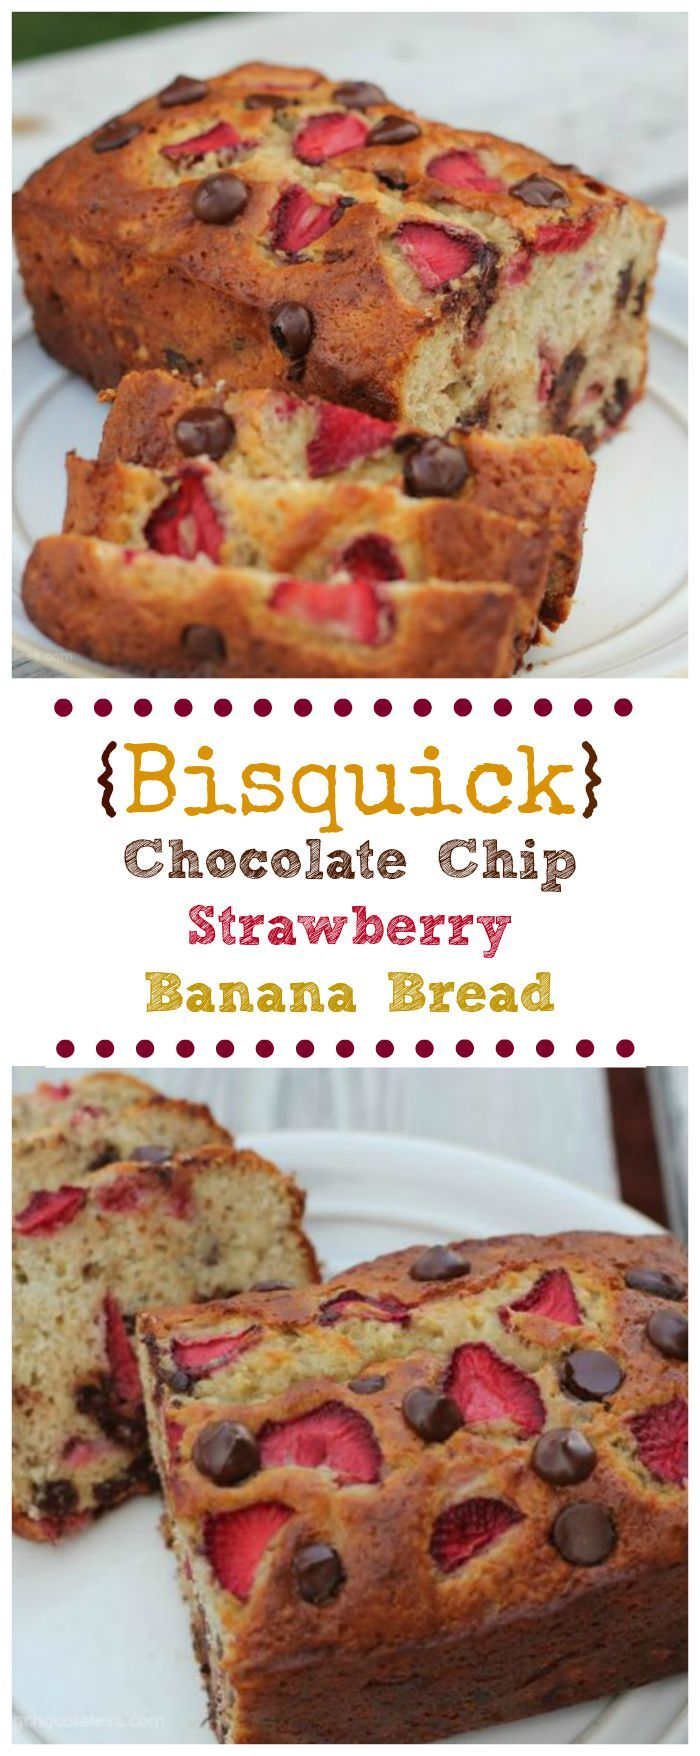 {Bisquick} Chocolate Chip-Strawberry-Banana Bread via @https://www.pinterest.com/BaknChocolaTess/